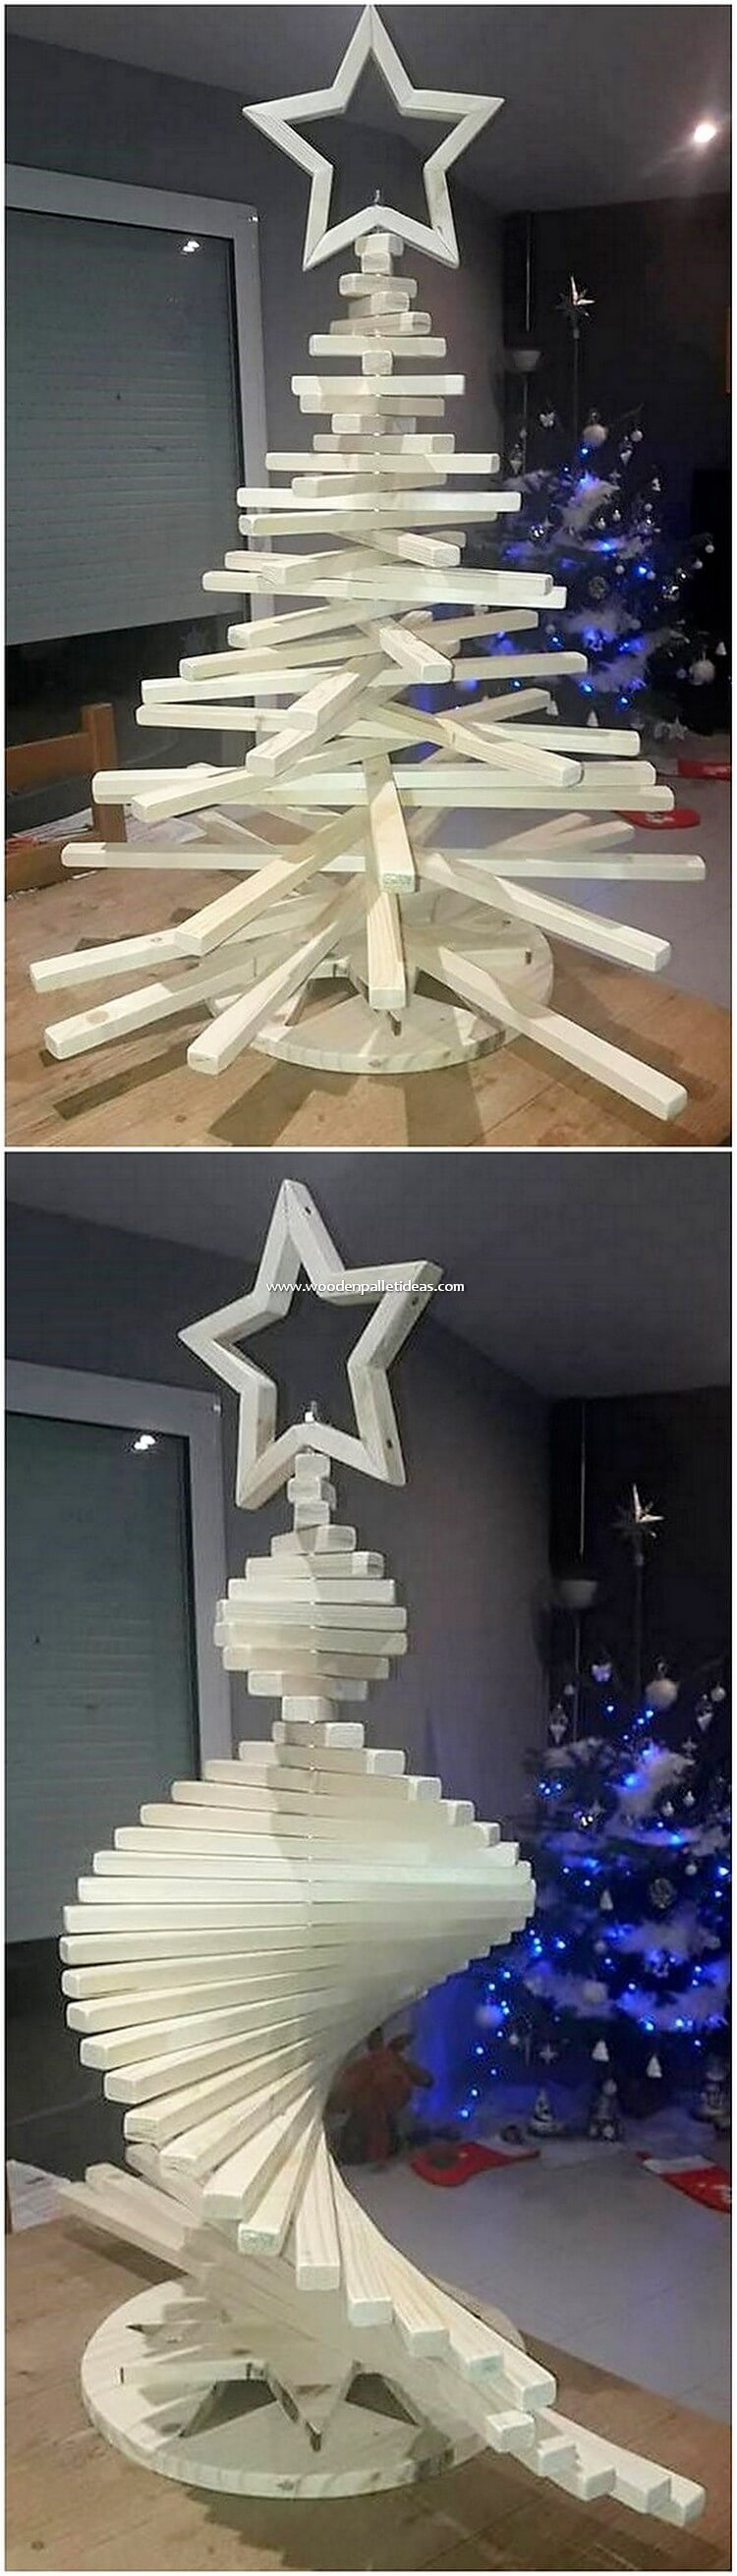 Pallet Christmas Tree with Star